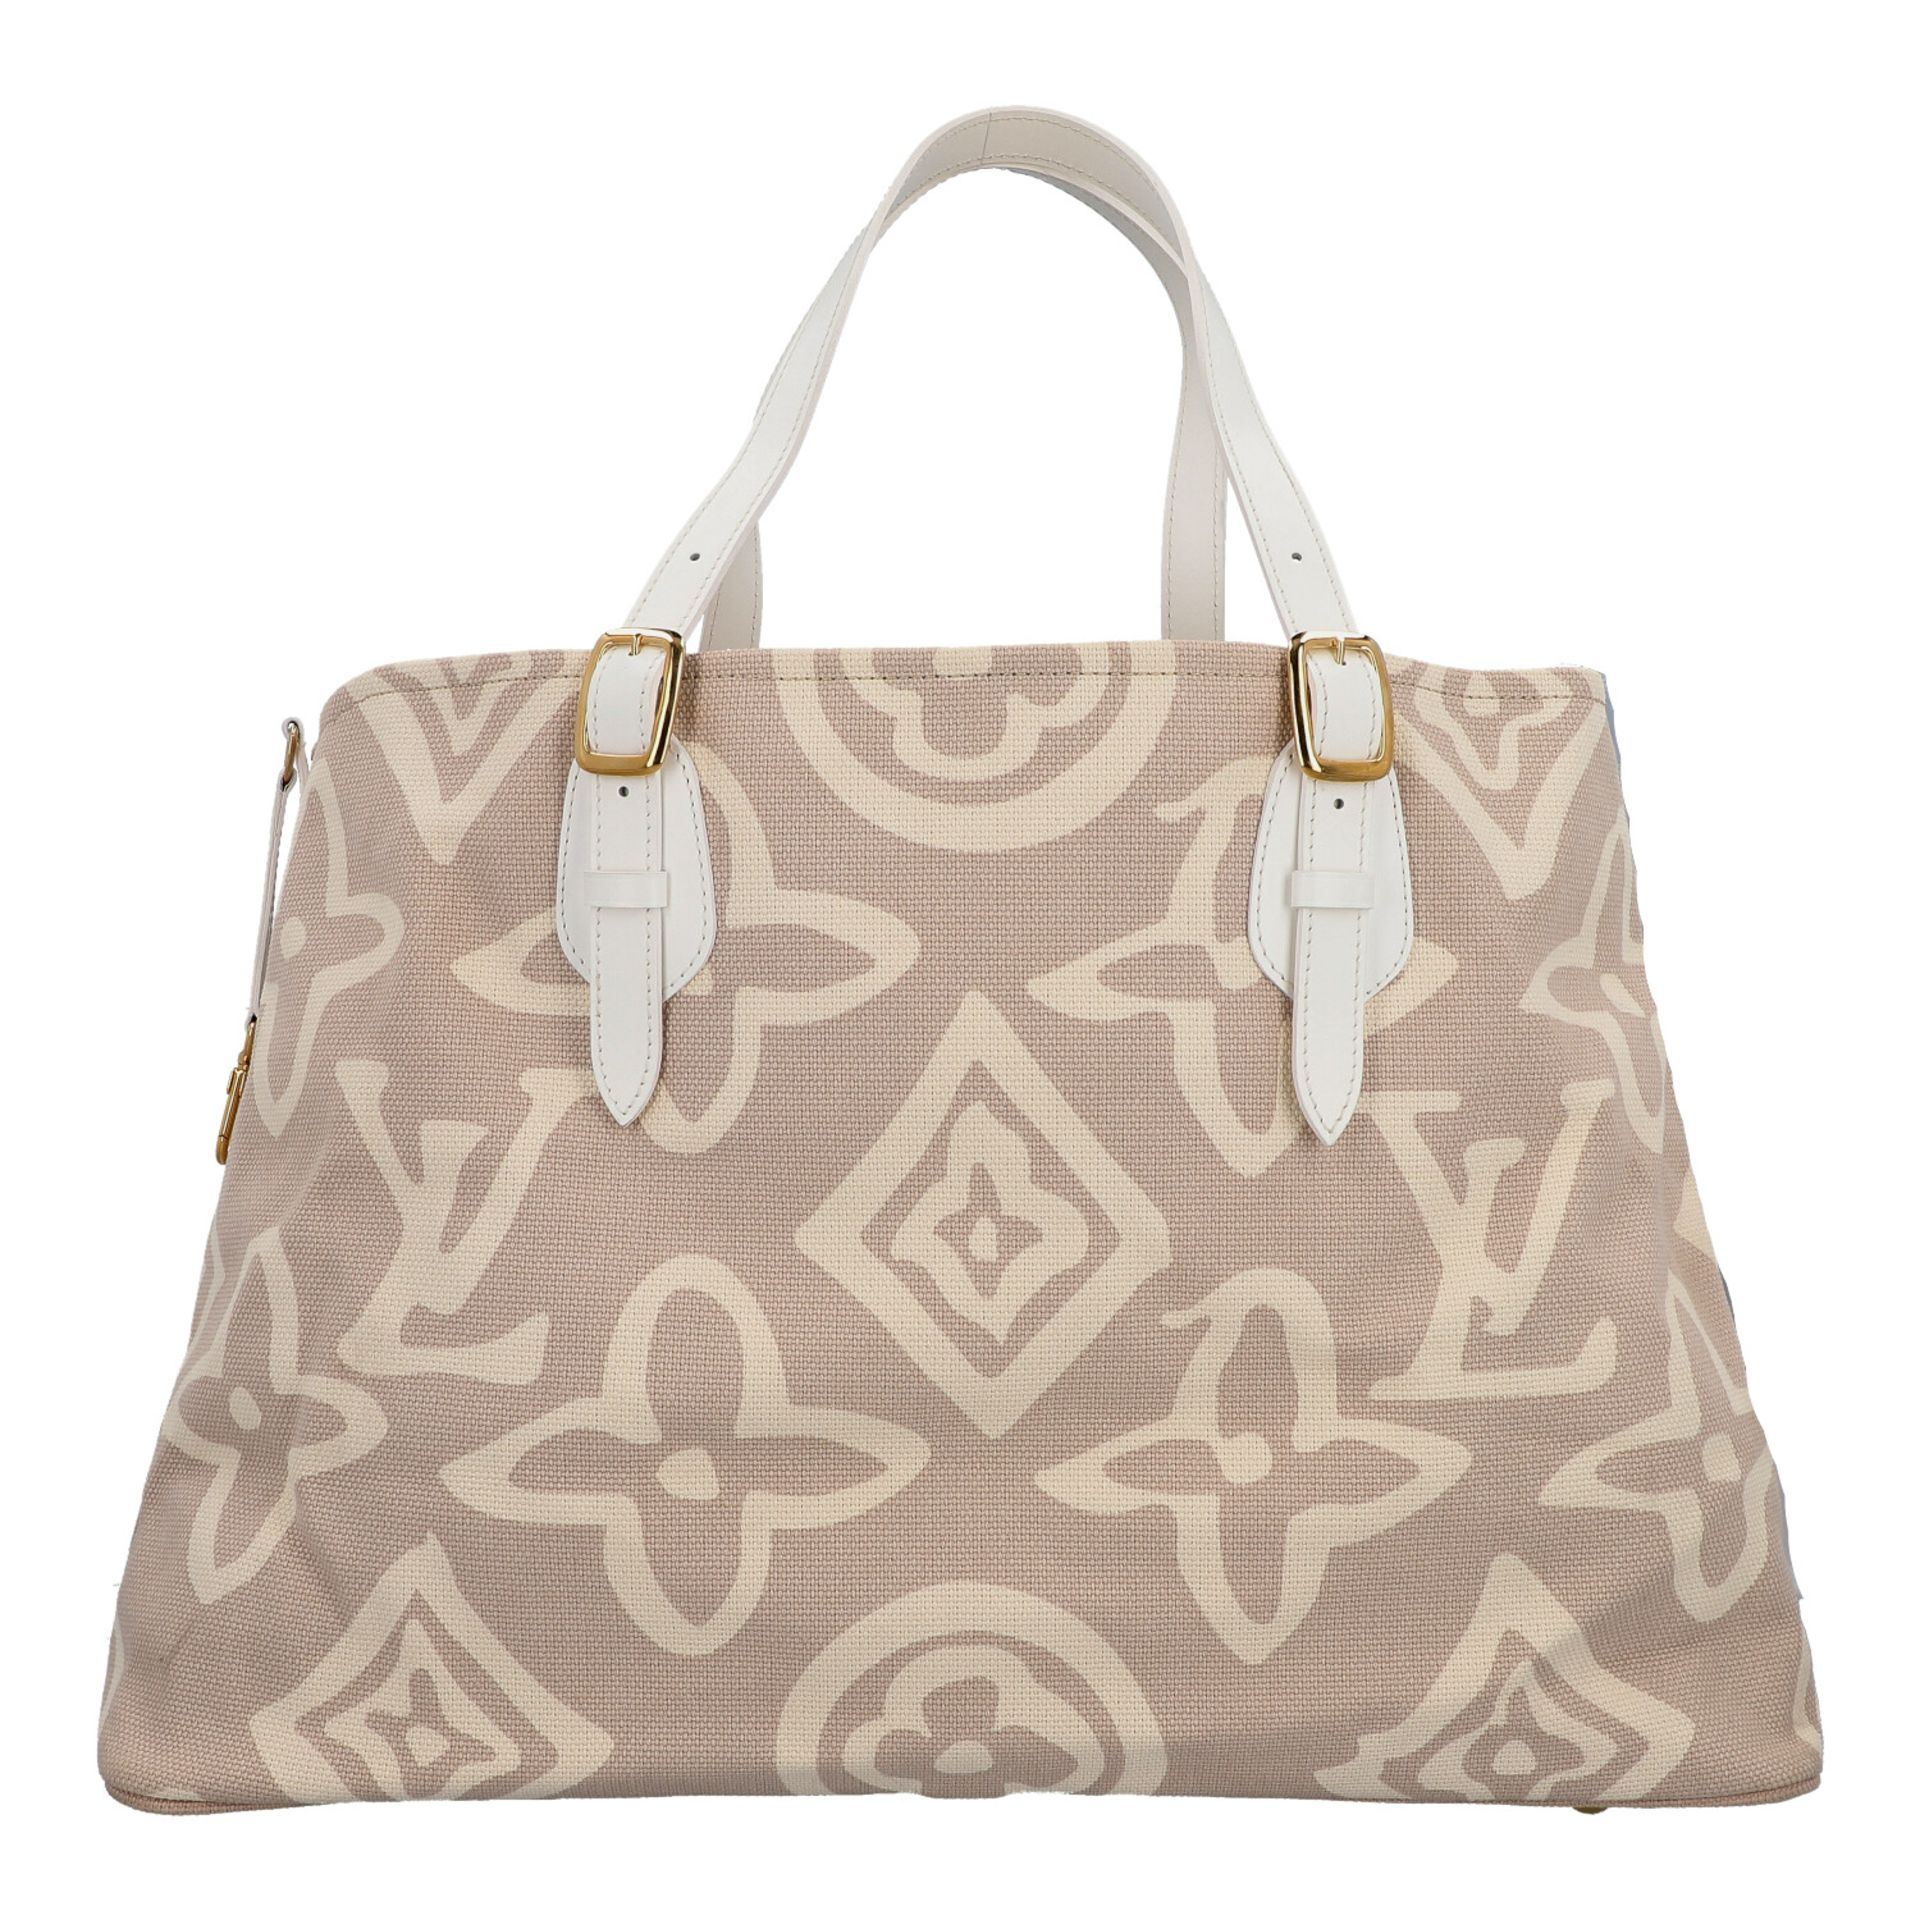 "LOUIS VUITTON Shopper ""TAHITIENNE GM"", Koll.: 2008 Designed by Marc Jacobs, inspiriert - Image 4 of 9"